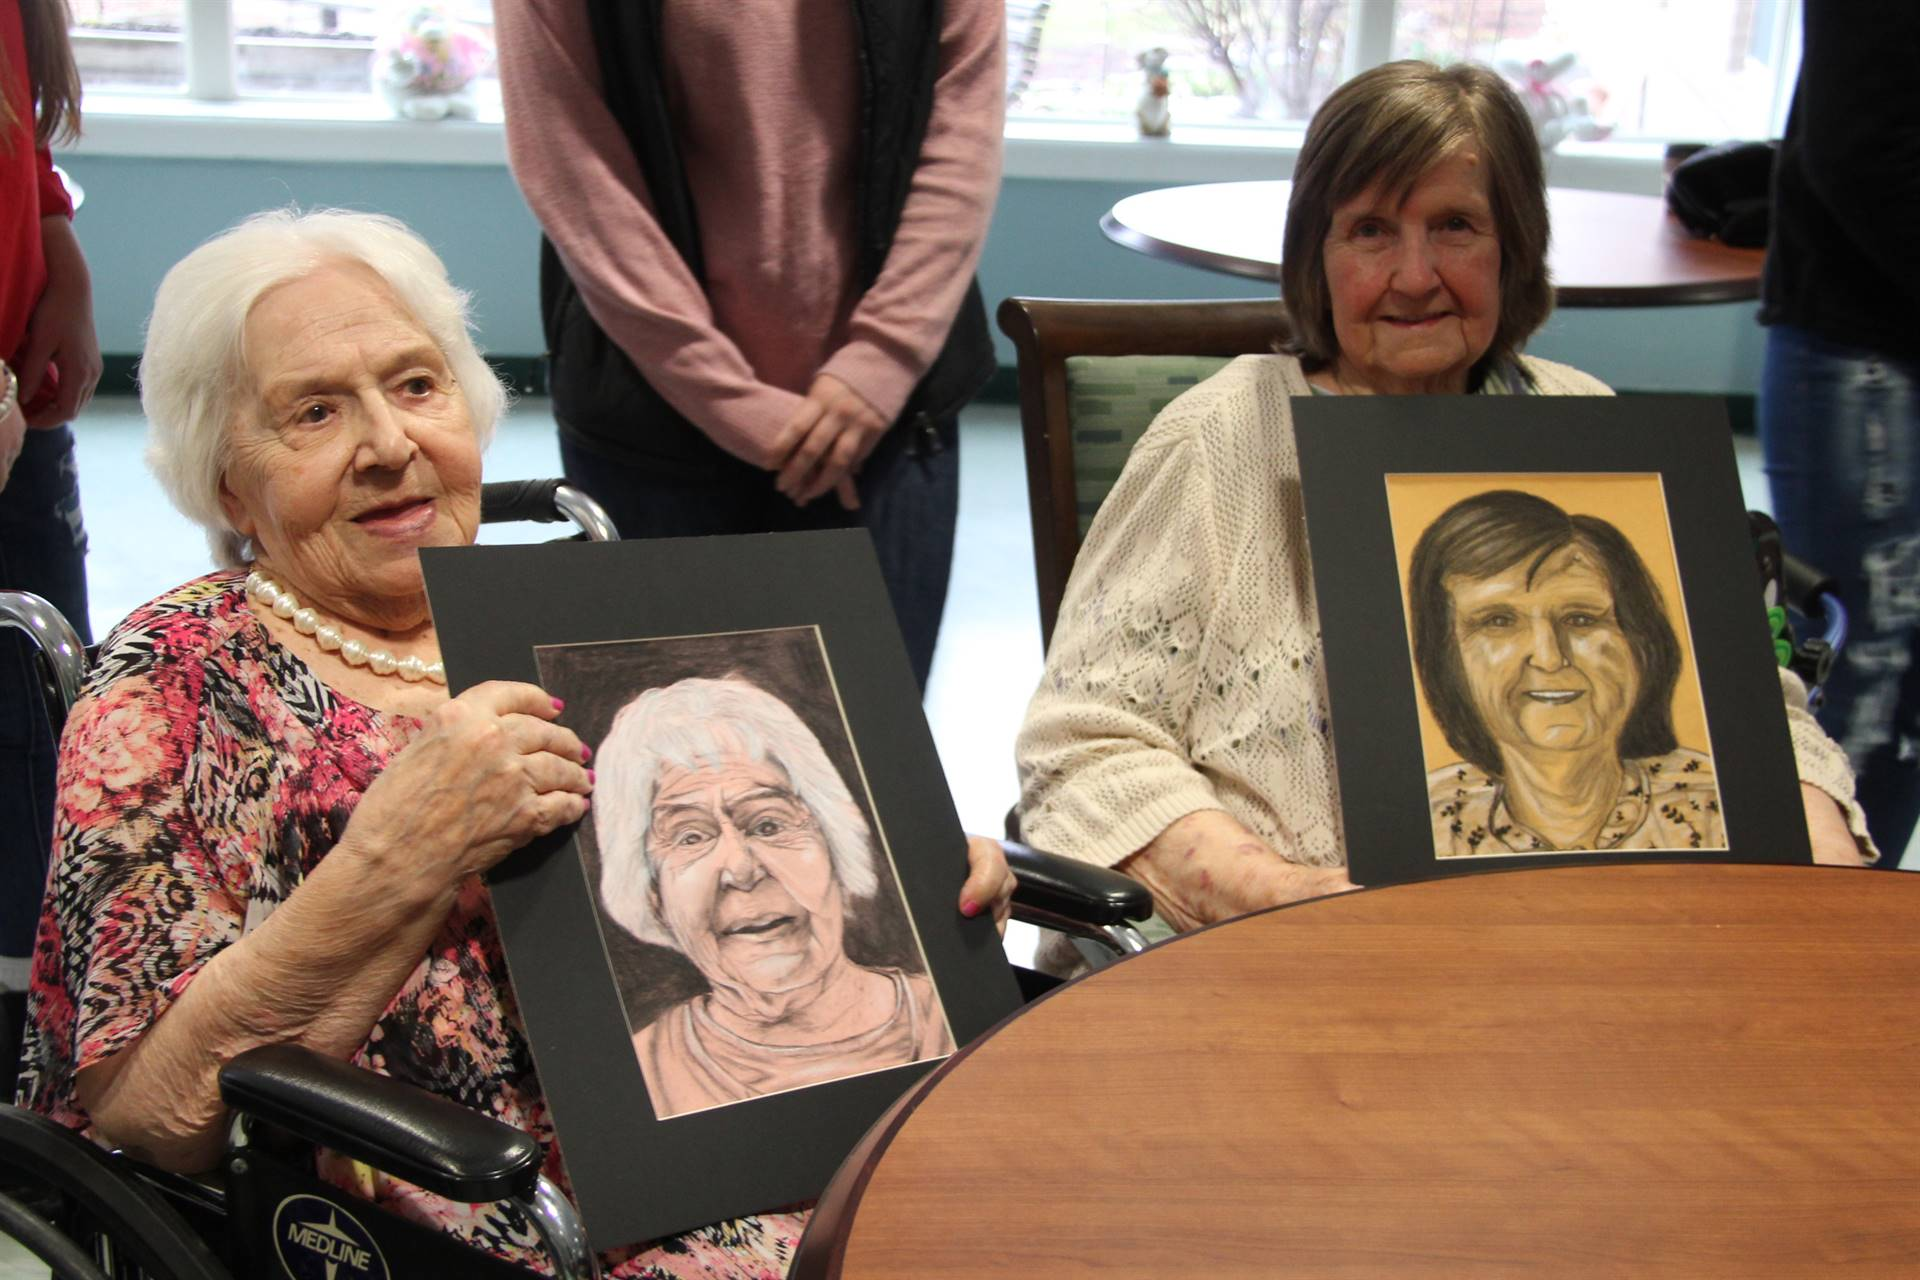 two women smiling holding drawings